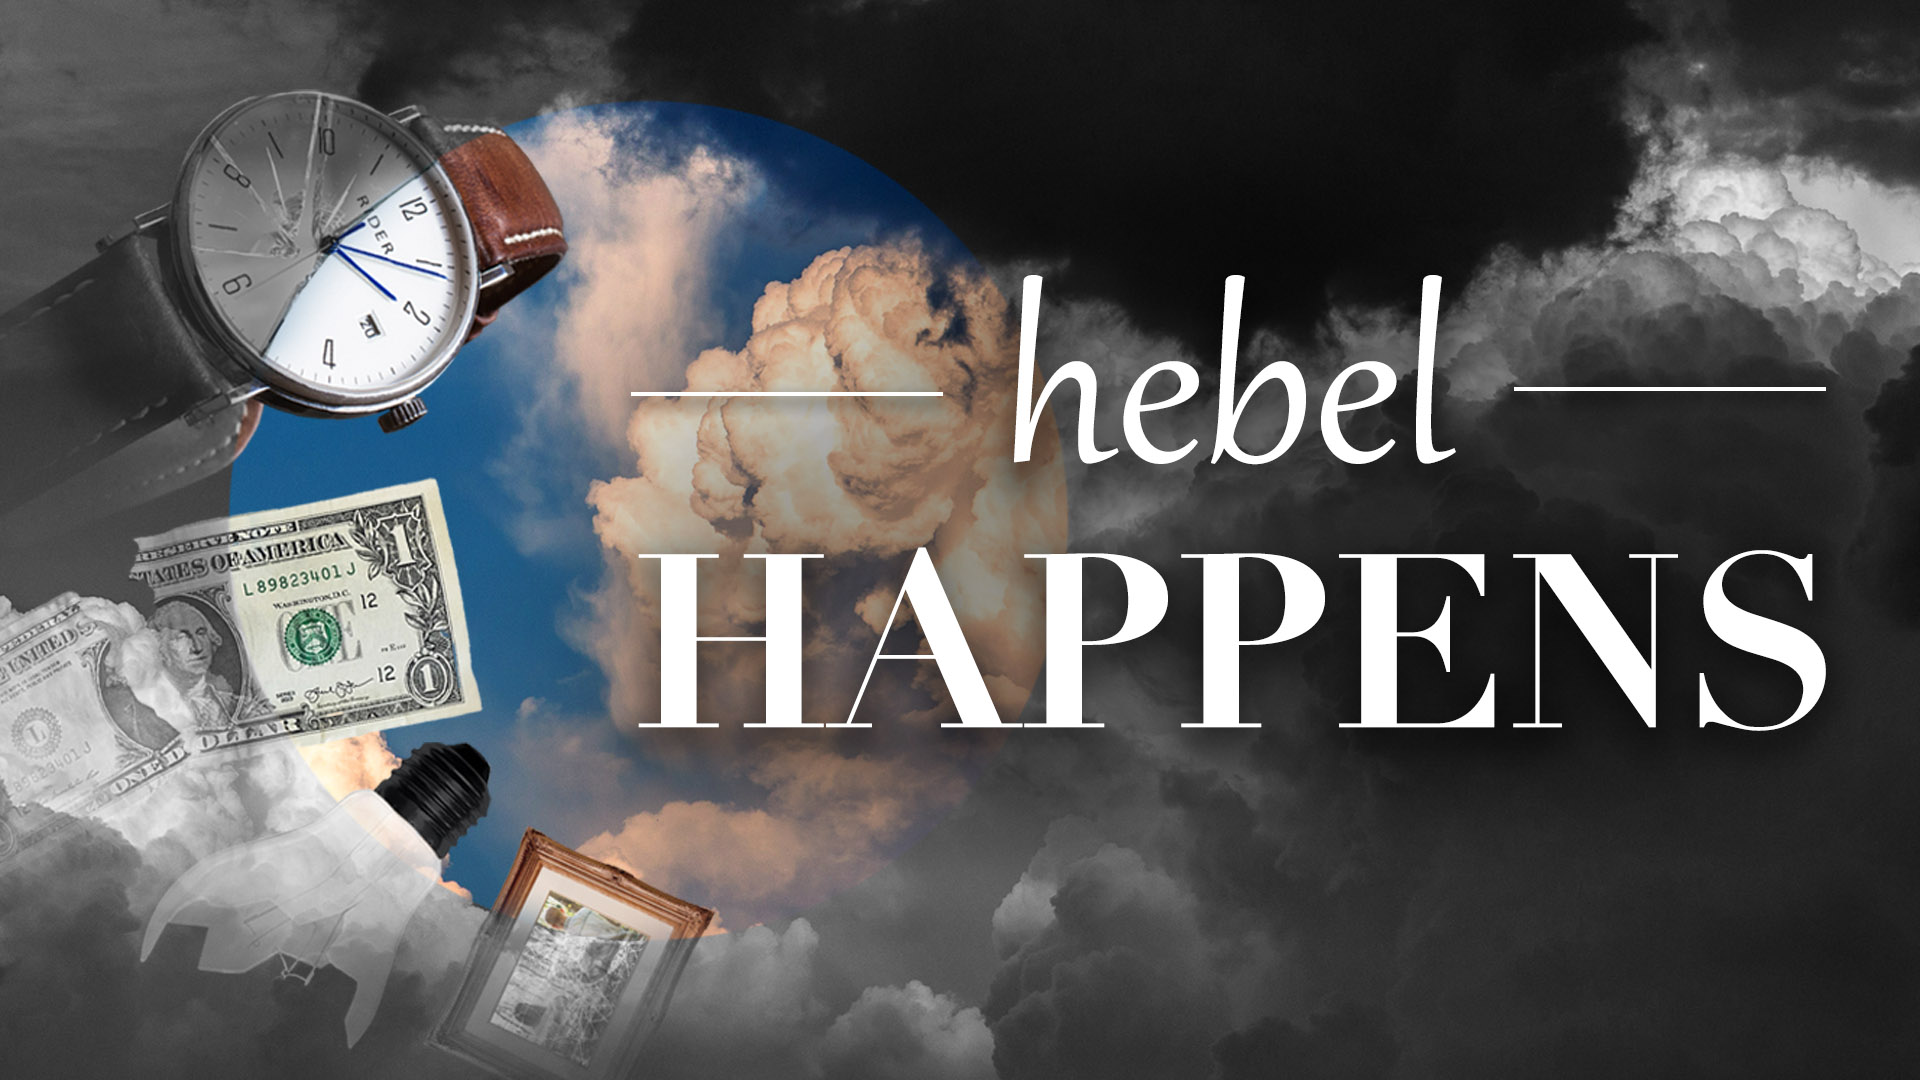 Jan. 7 – Life is HEBEL